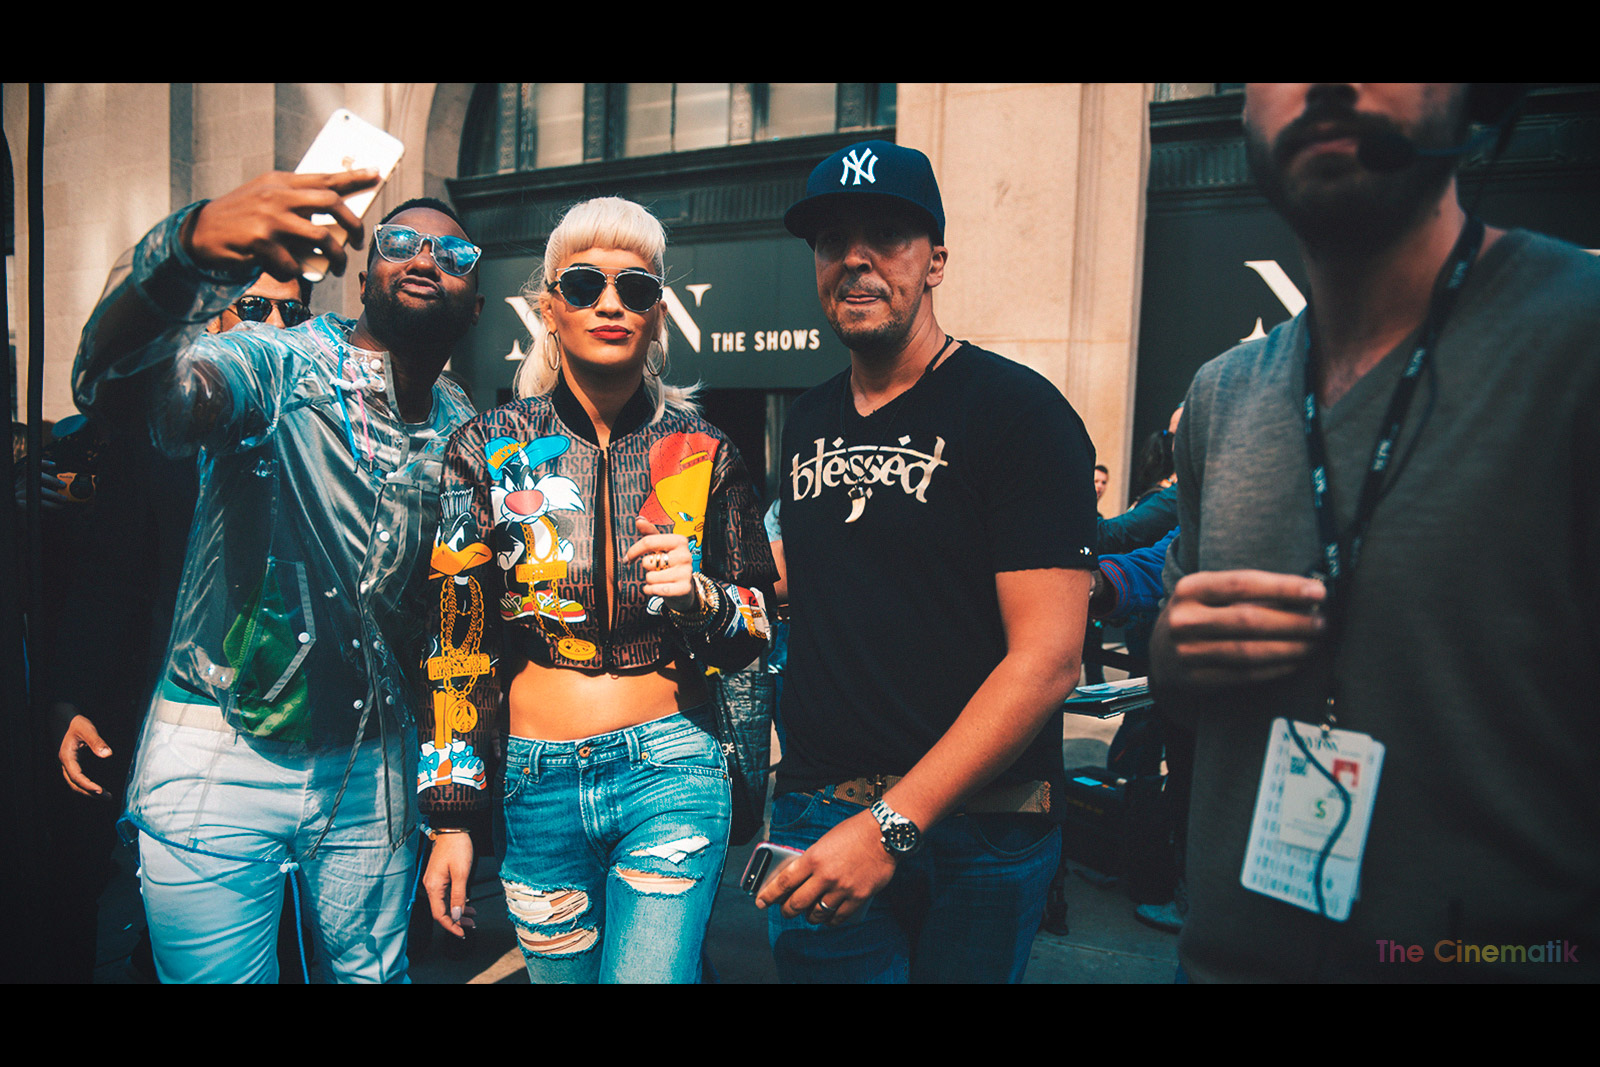 RITA-ORA-stalked-by-fan-talking-unwanted-selfie-with-her-New York-fashion-Week-beautiful-cinematic-photograph-by-Kamal-Lahmadi.jpg